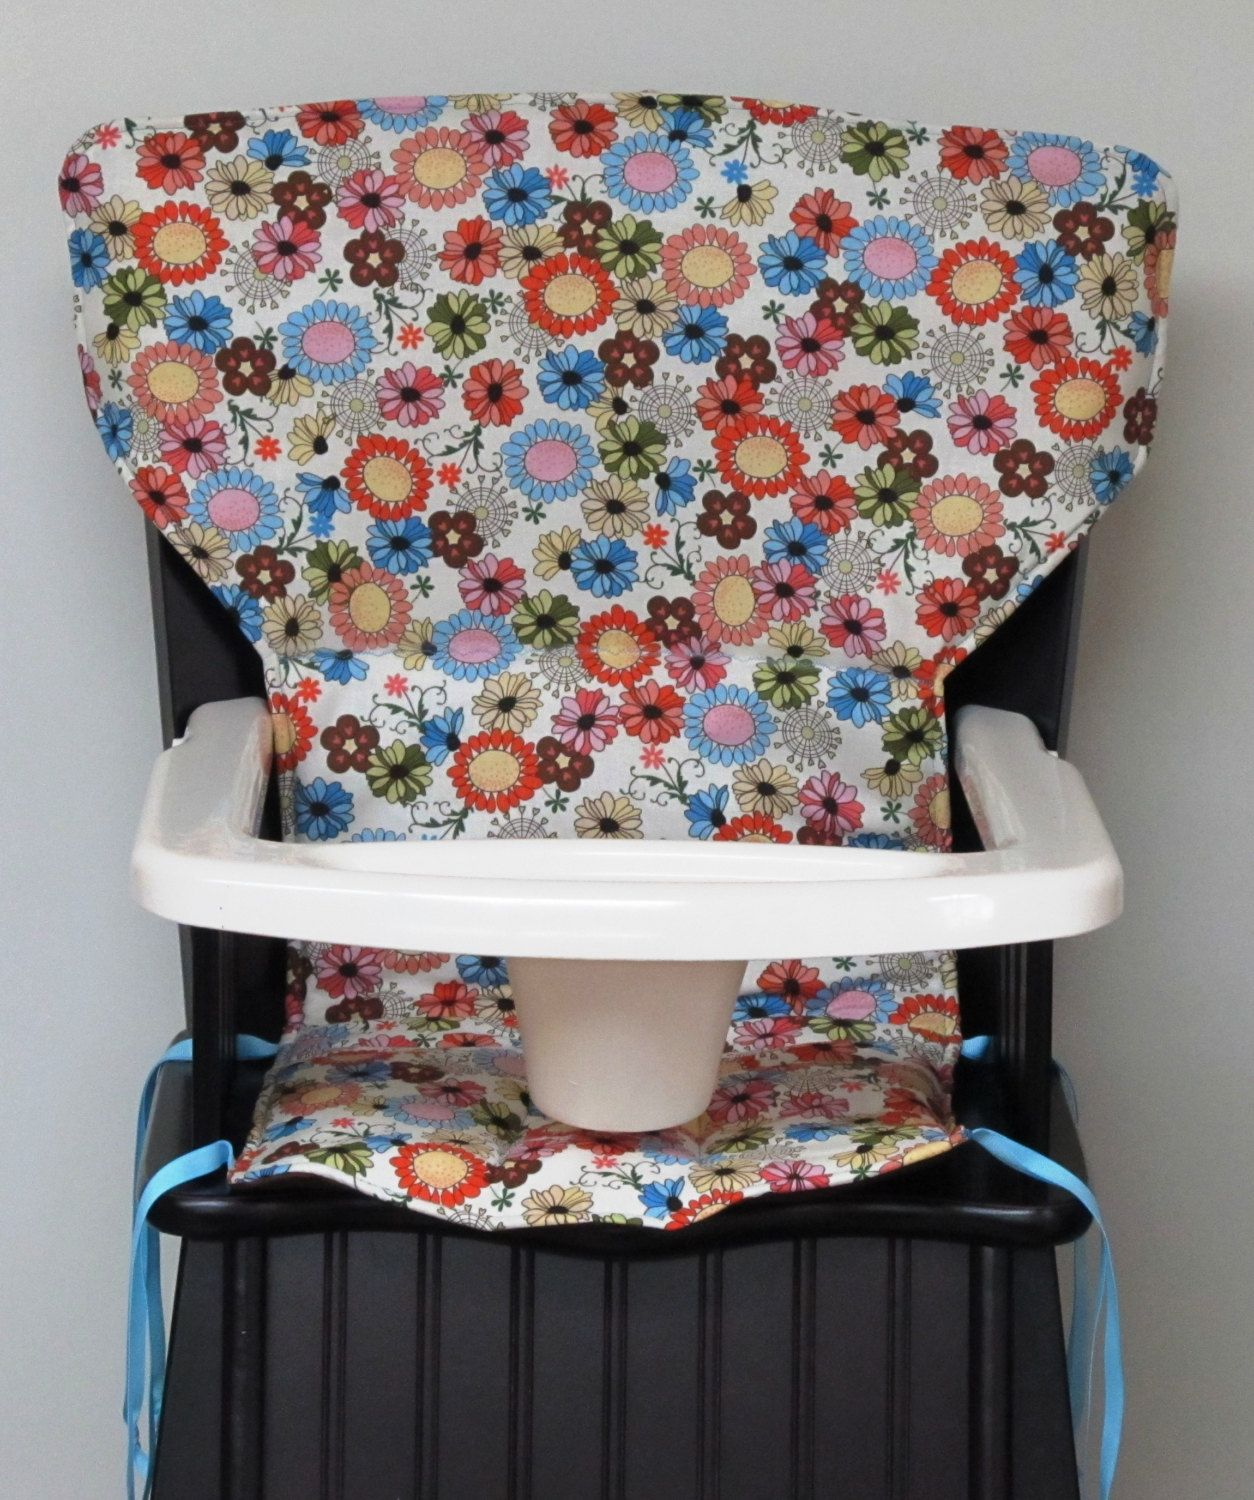 Eddie Bauer High Chair Pad Home And Living Baby Accessory Feeding